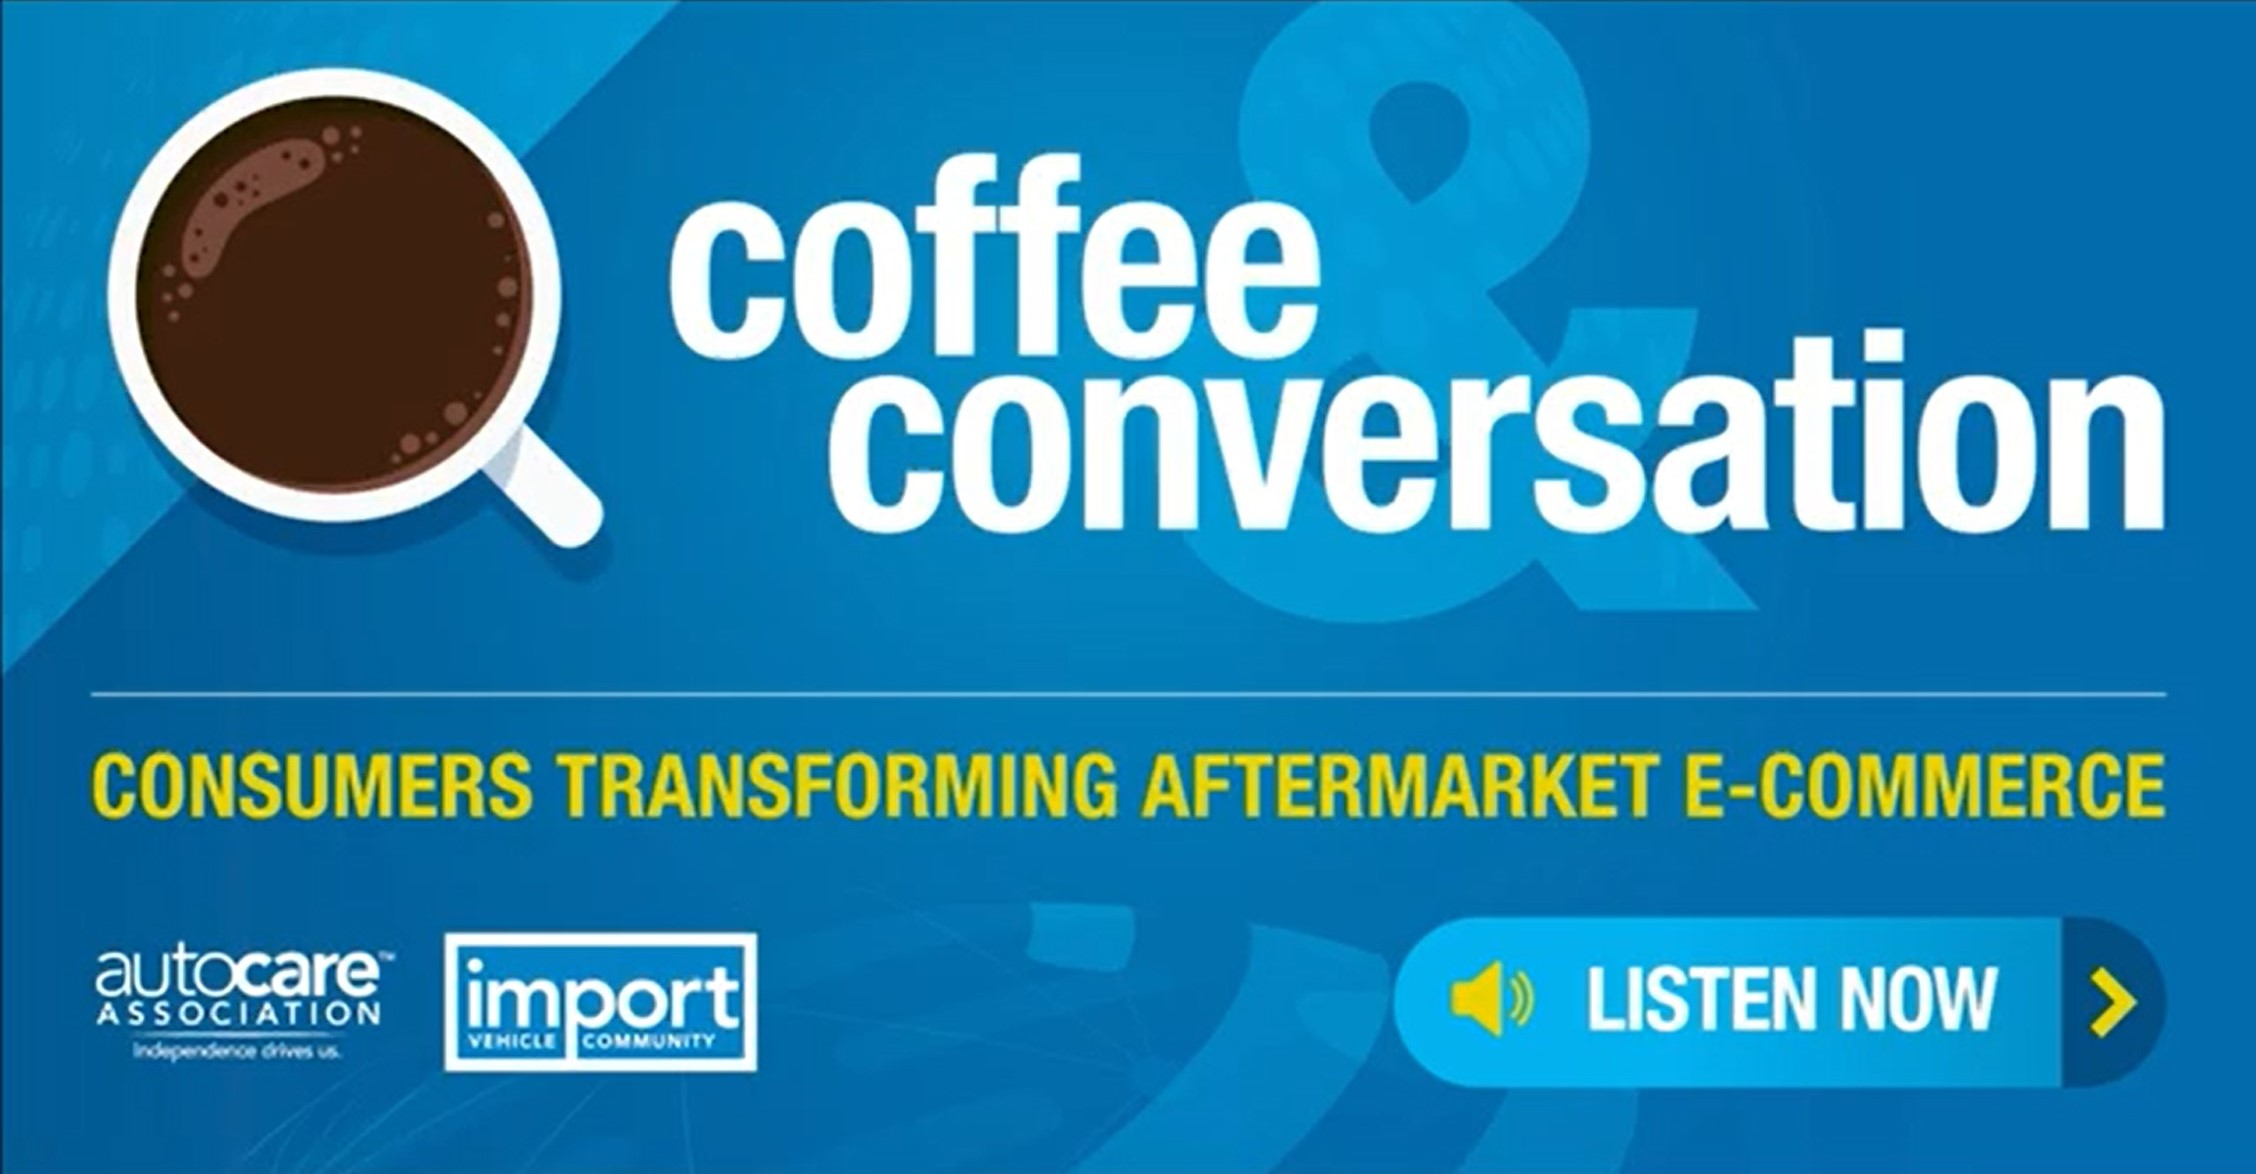 Coffee and Conversation 2: Consumers Transforming Aftermarket e-Commerce